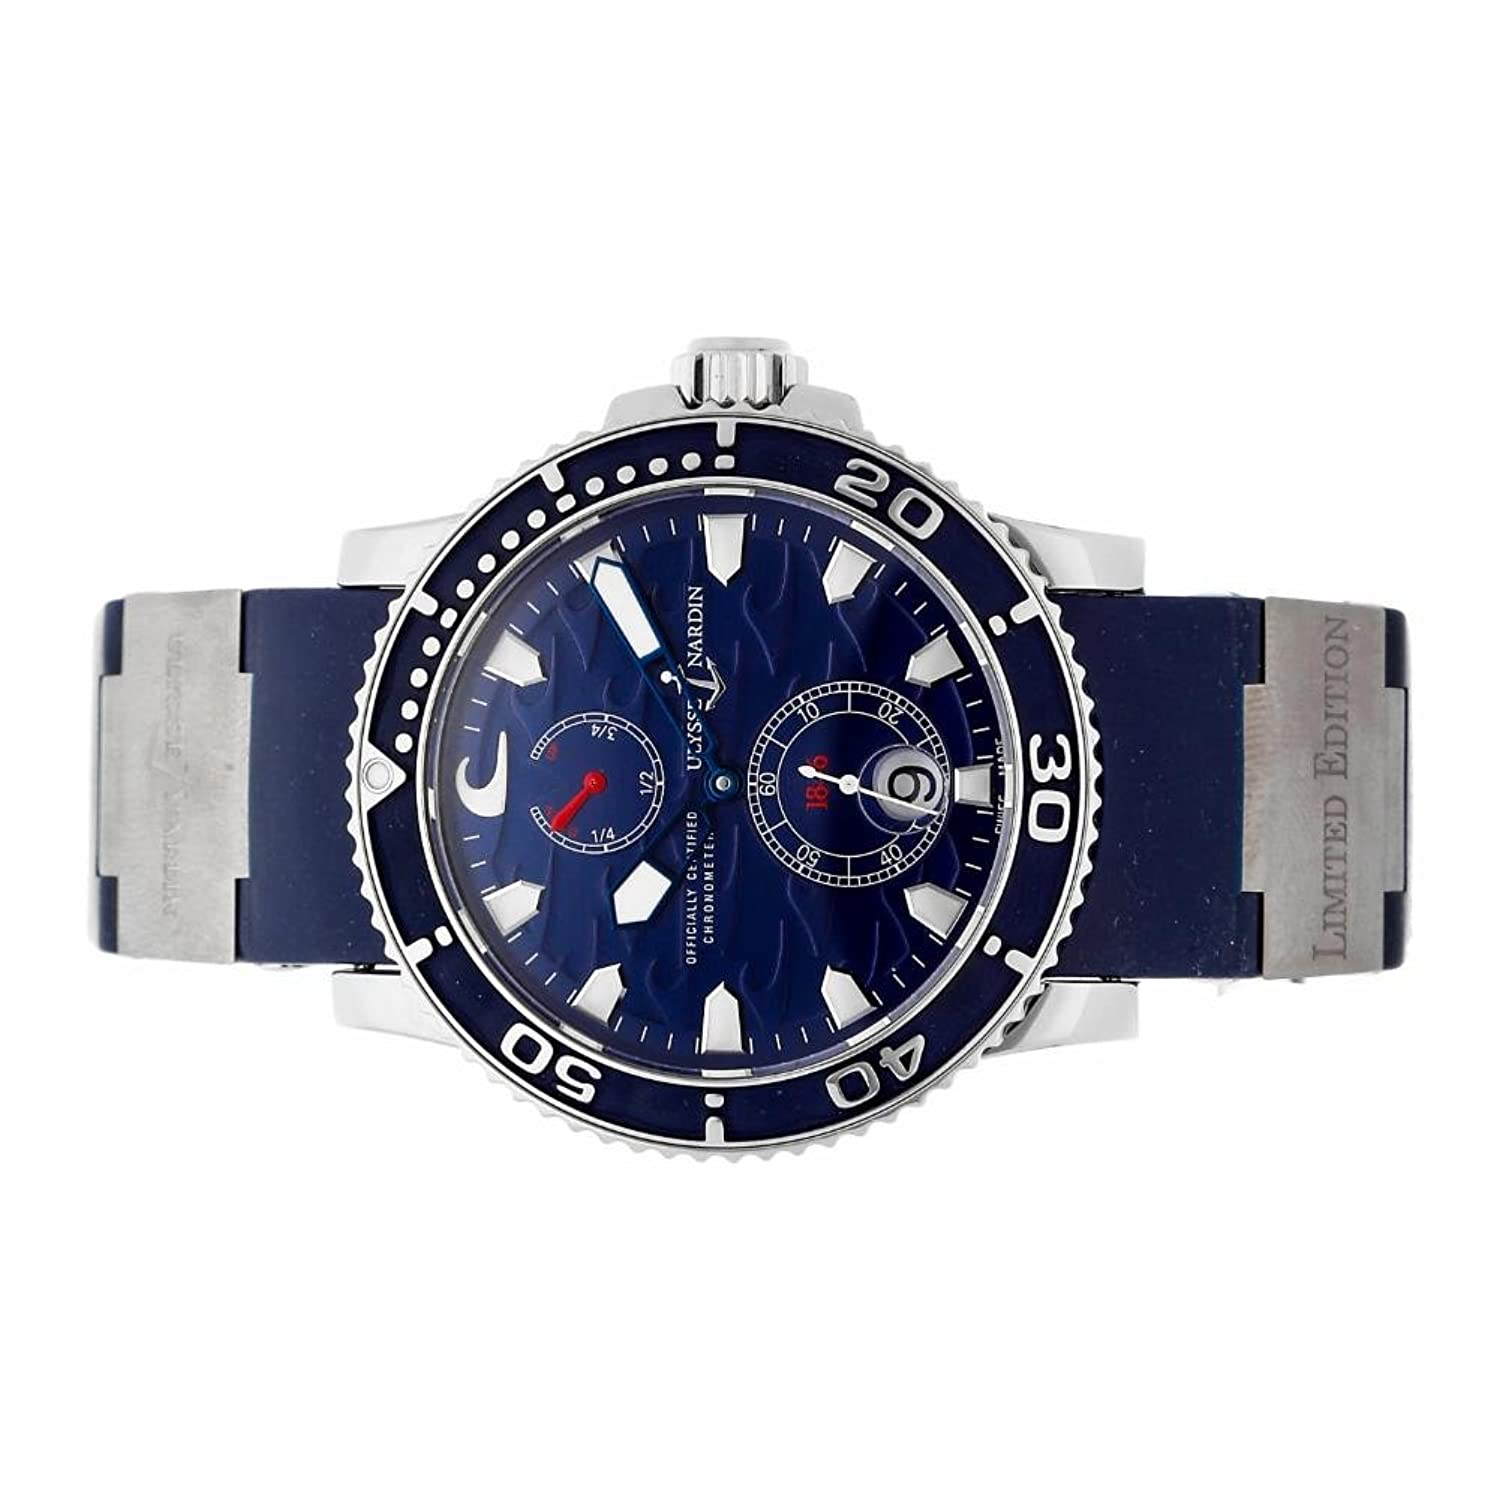 Amazon.com: Ulysse Nardin Maxi Marine automatic-self-wind mens Watch 263-36LE-3 (Certified Pre-owned): Ulysse Nardin: Watches